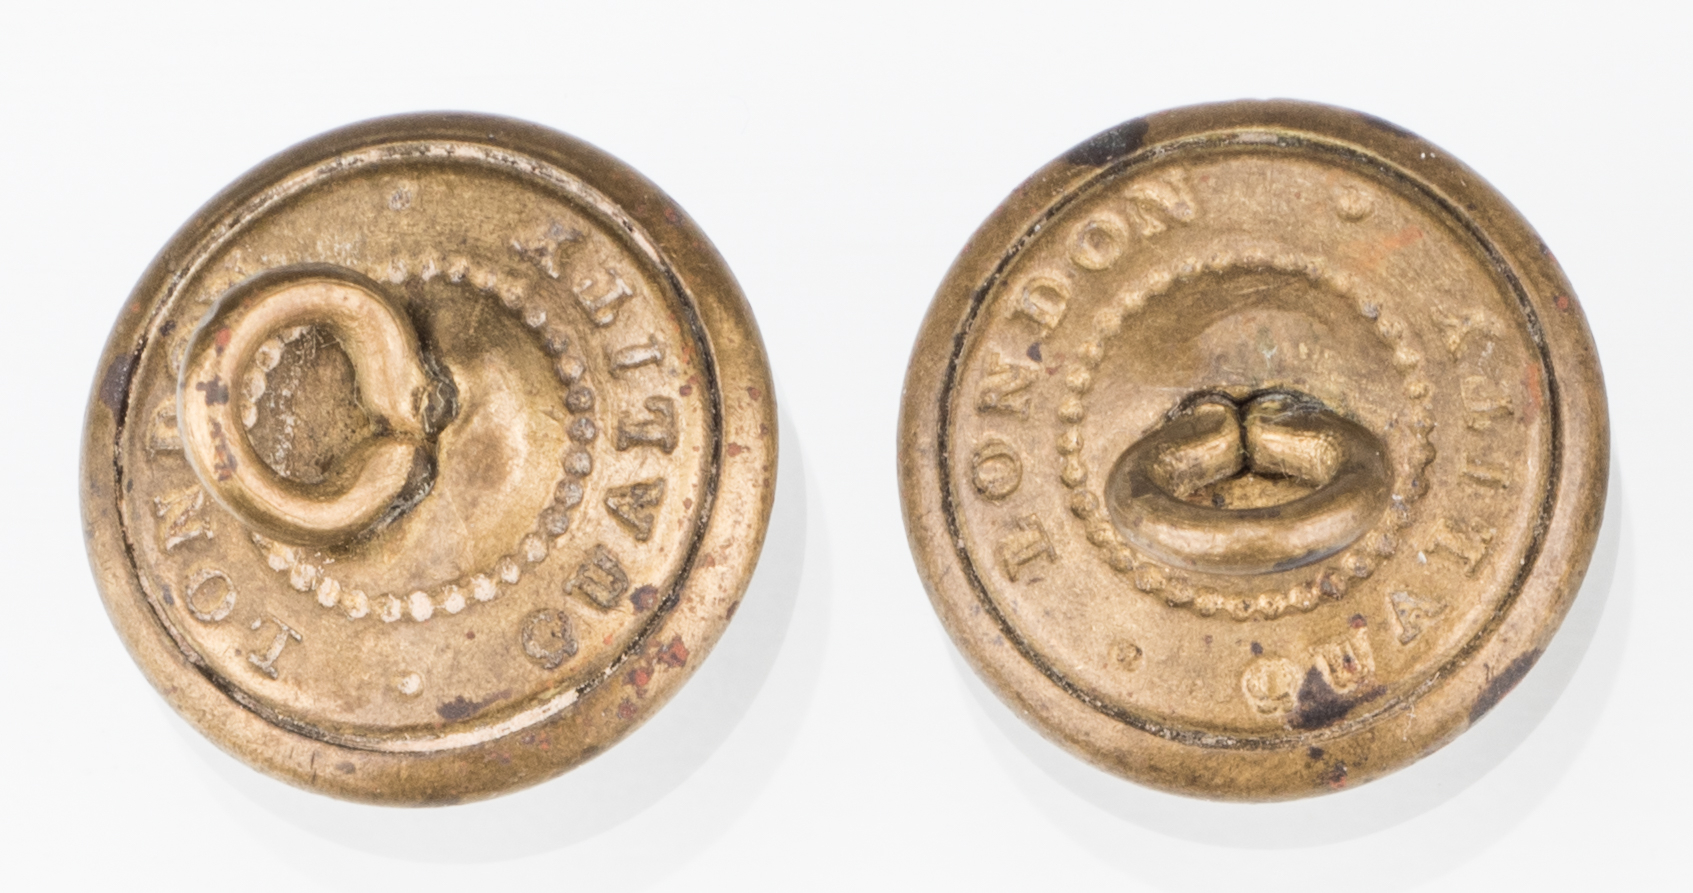 Lot 205: 4 Rare Confederate Uniform Buttons, Chatwin & Sons, Group #2